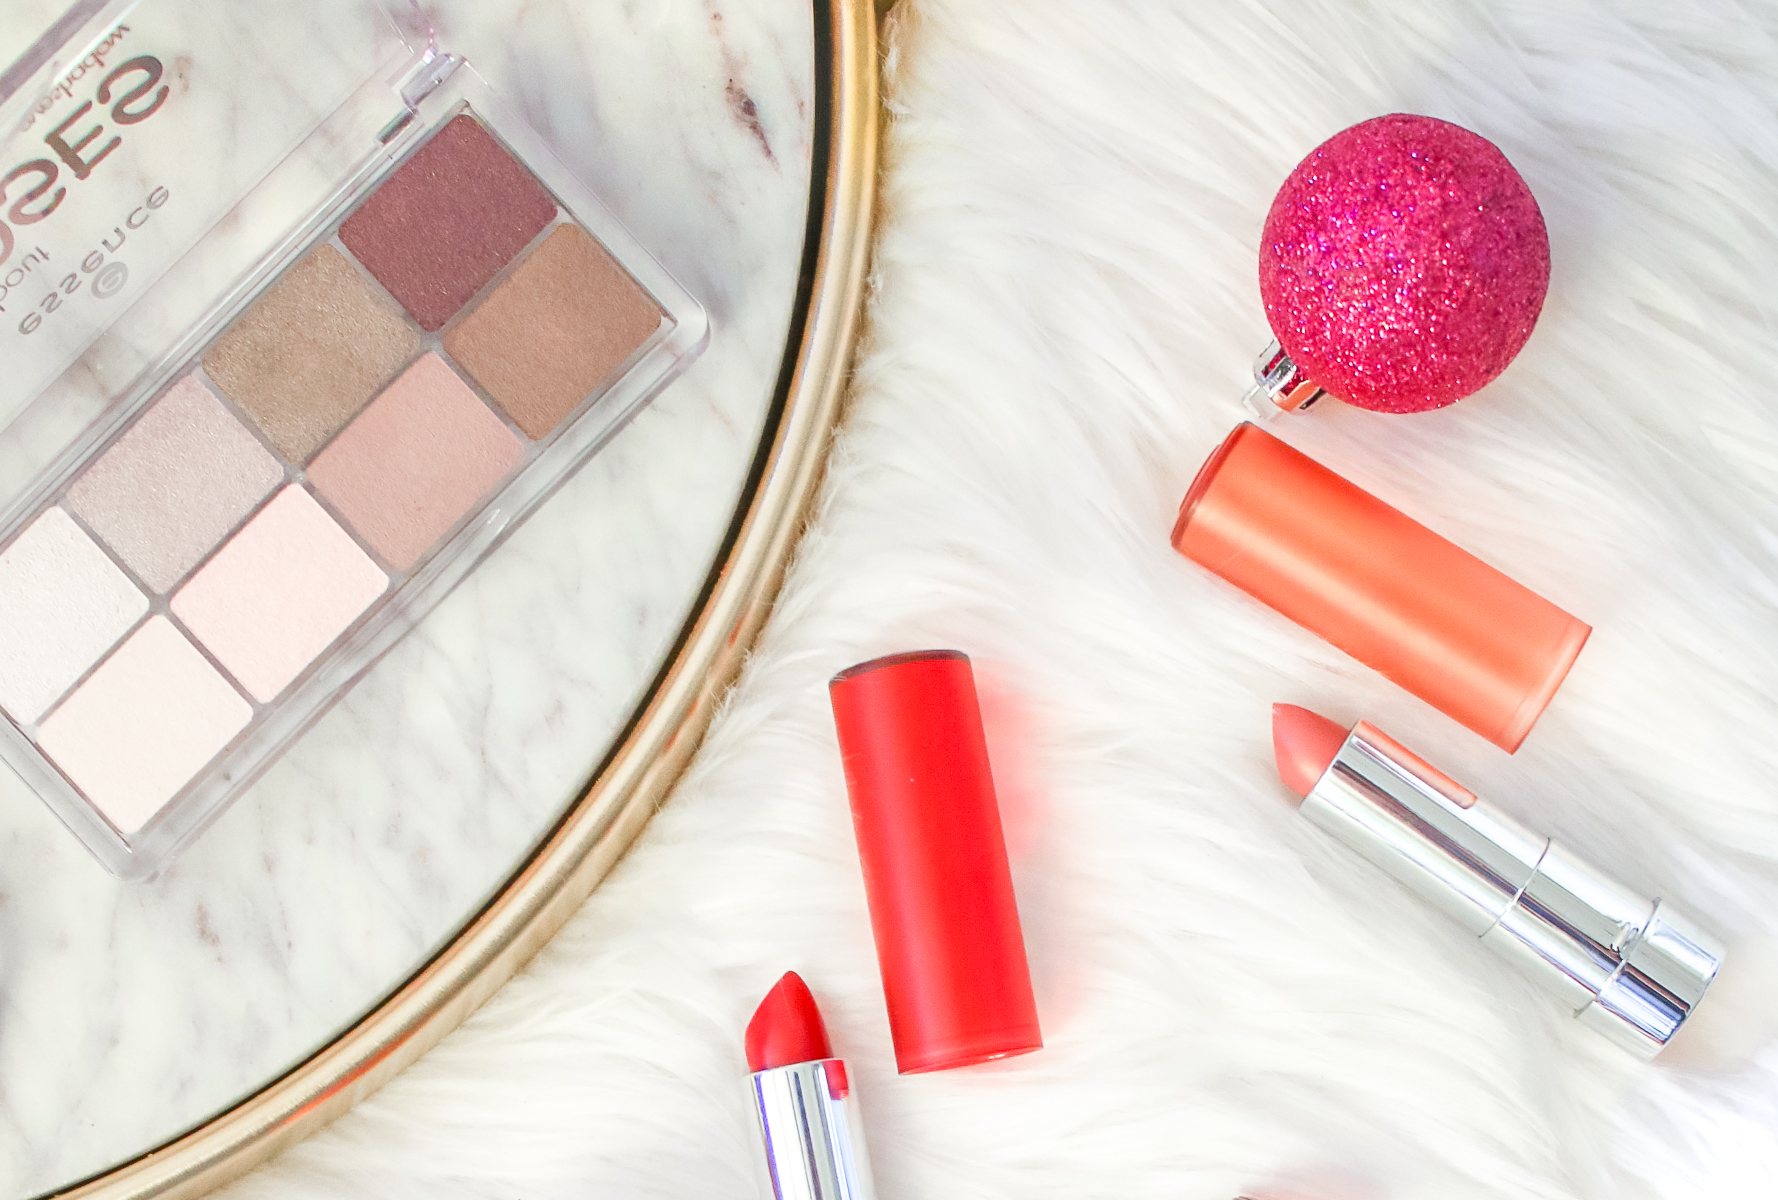 The best affordable but good quality makeup from essence cosmetics (including the best lipstick under $5) by southern fashion blogger Stephanie Ziajka from Diary of a Debutante